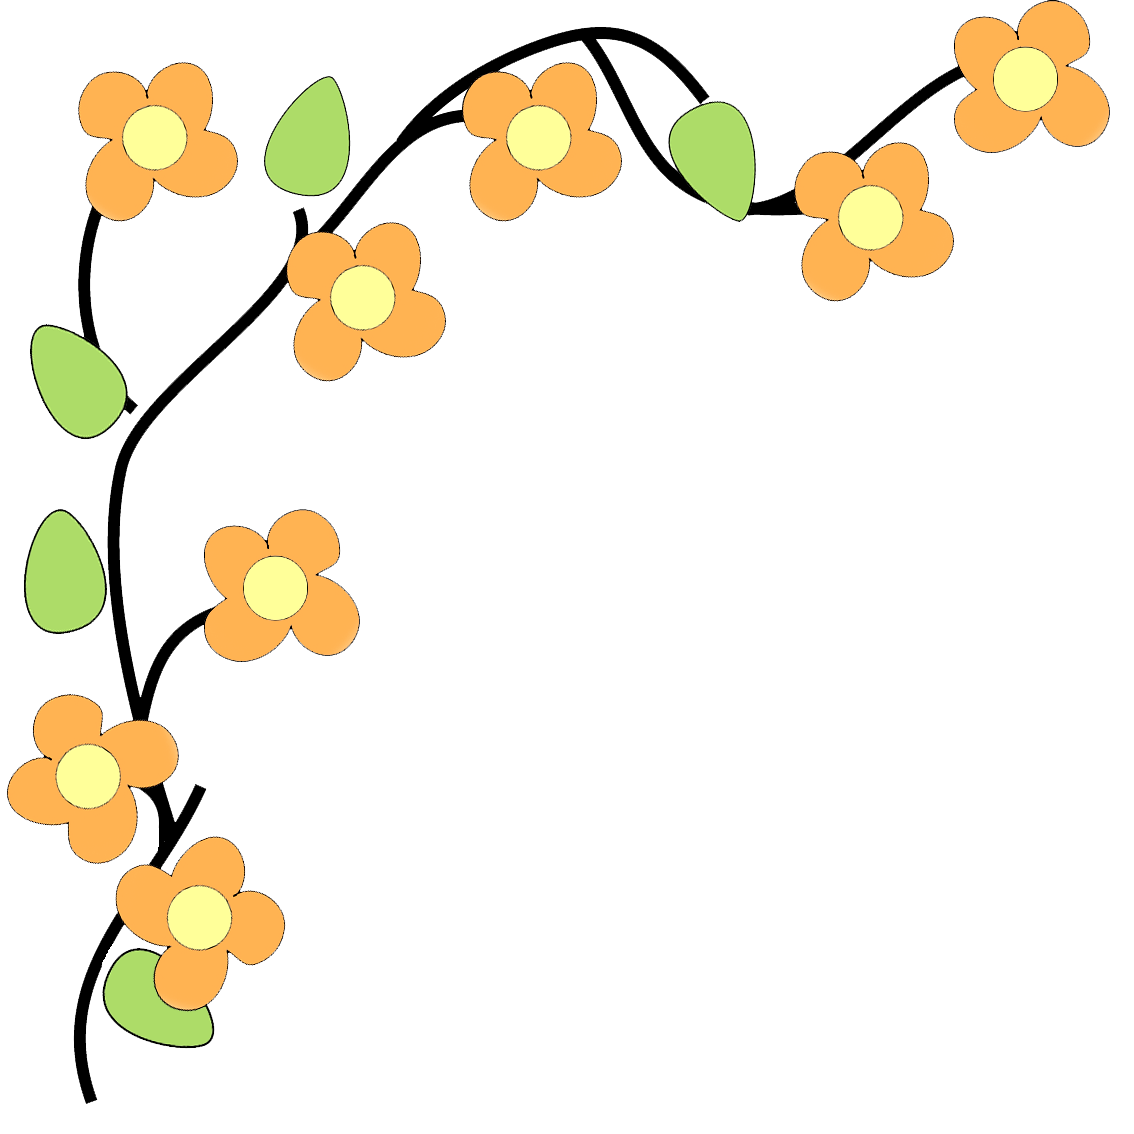 Border With Flowers Png